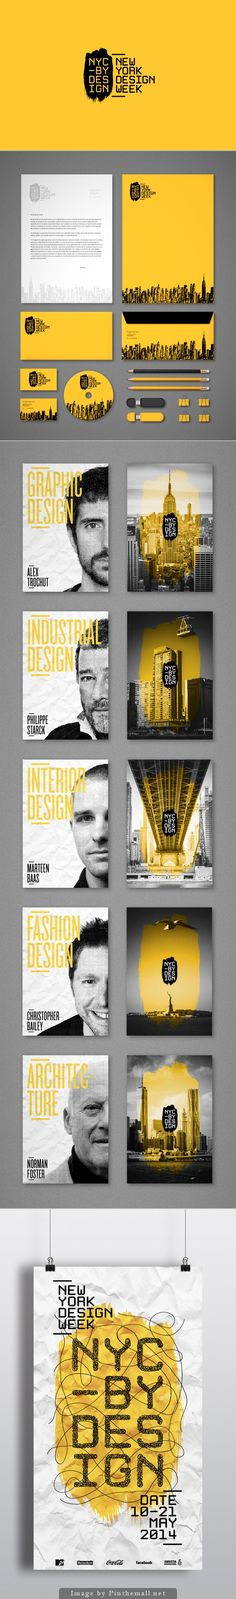 New ideas for design layout yearbook behance Layout Design, Graphisches Design, Buch Design, Print Layout, Creative Design, Design Cars, Poster Layout, Design Ideas, Webdesign Inspiration